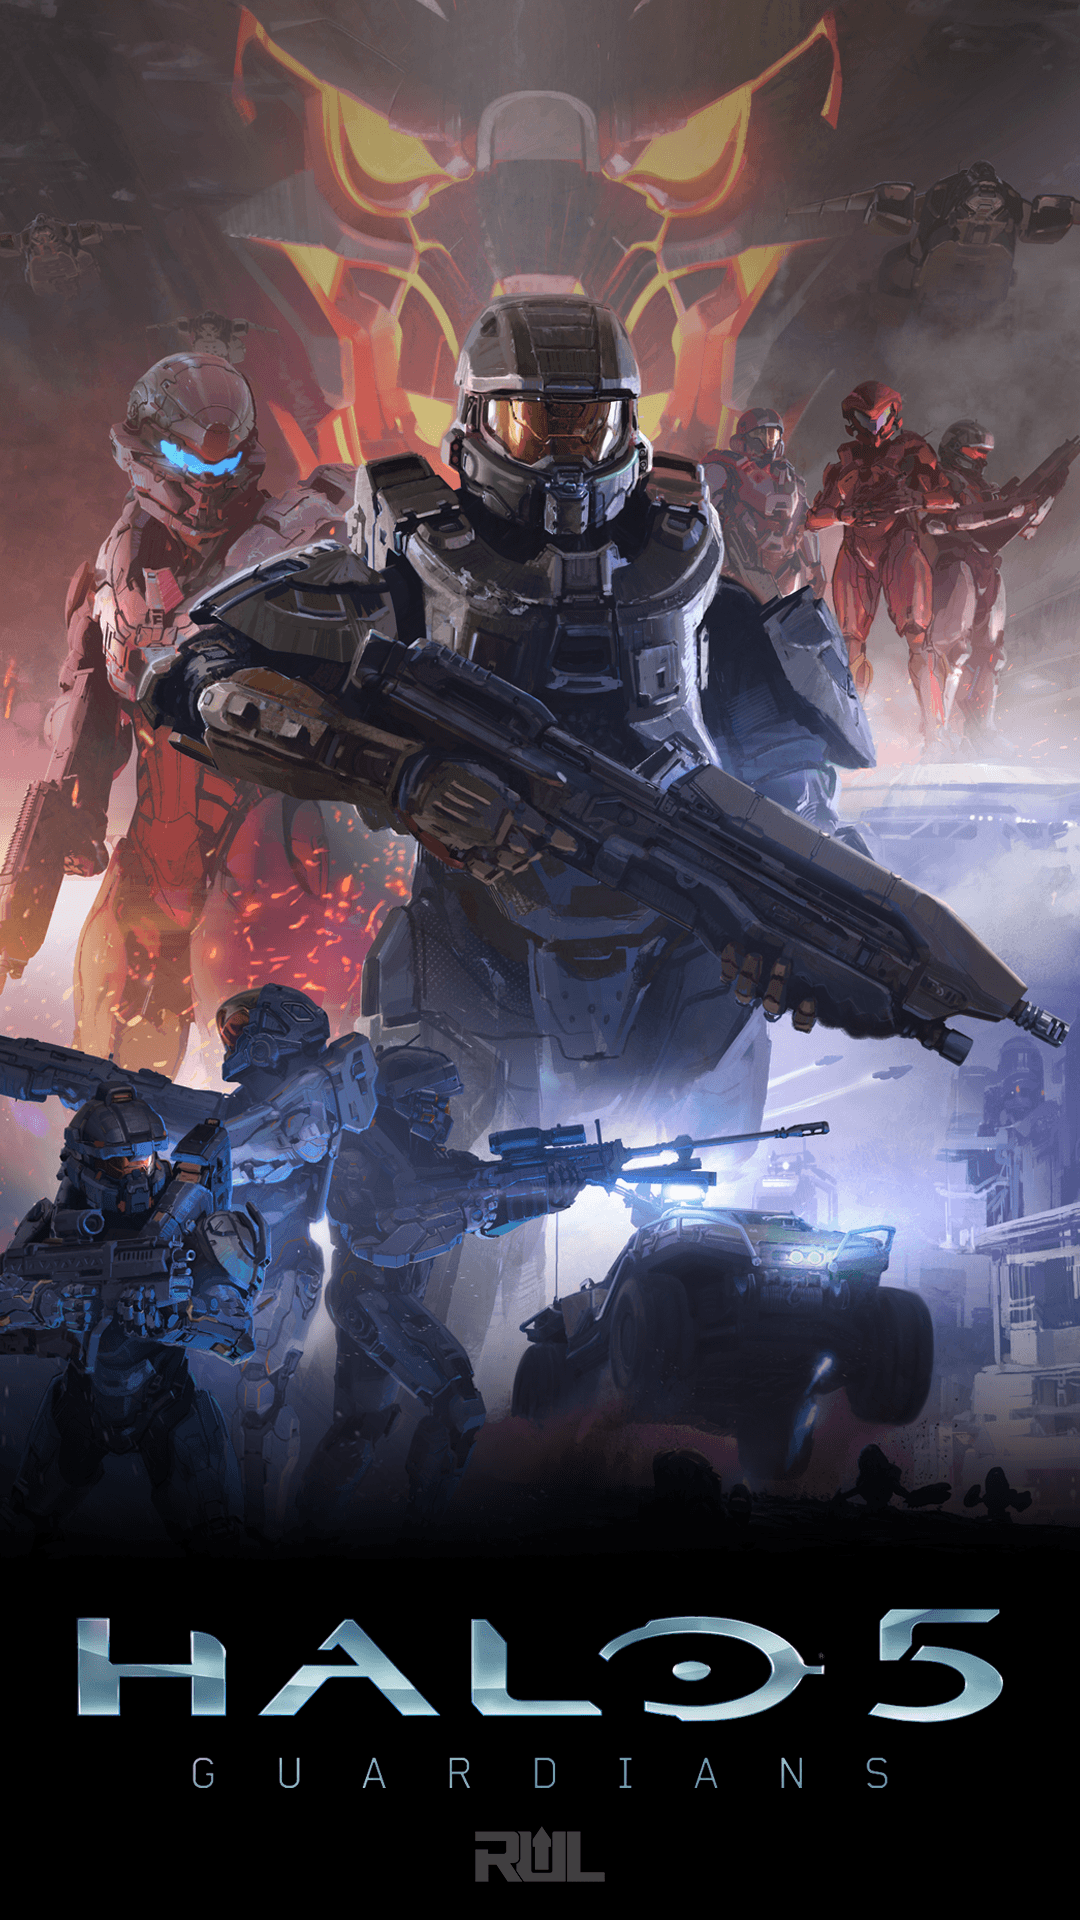 1080x1920 Halo 5 Phone Wallpapers, Profile Pics, and More - Ready Up Live